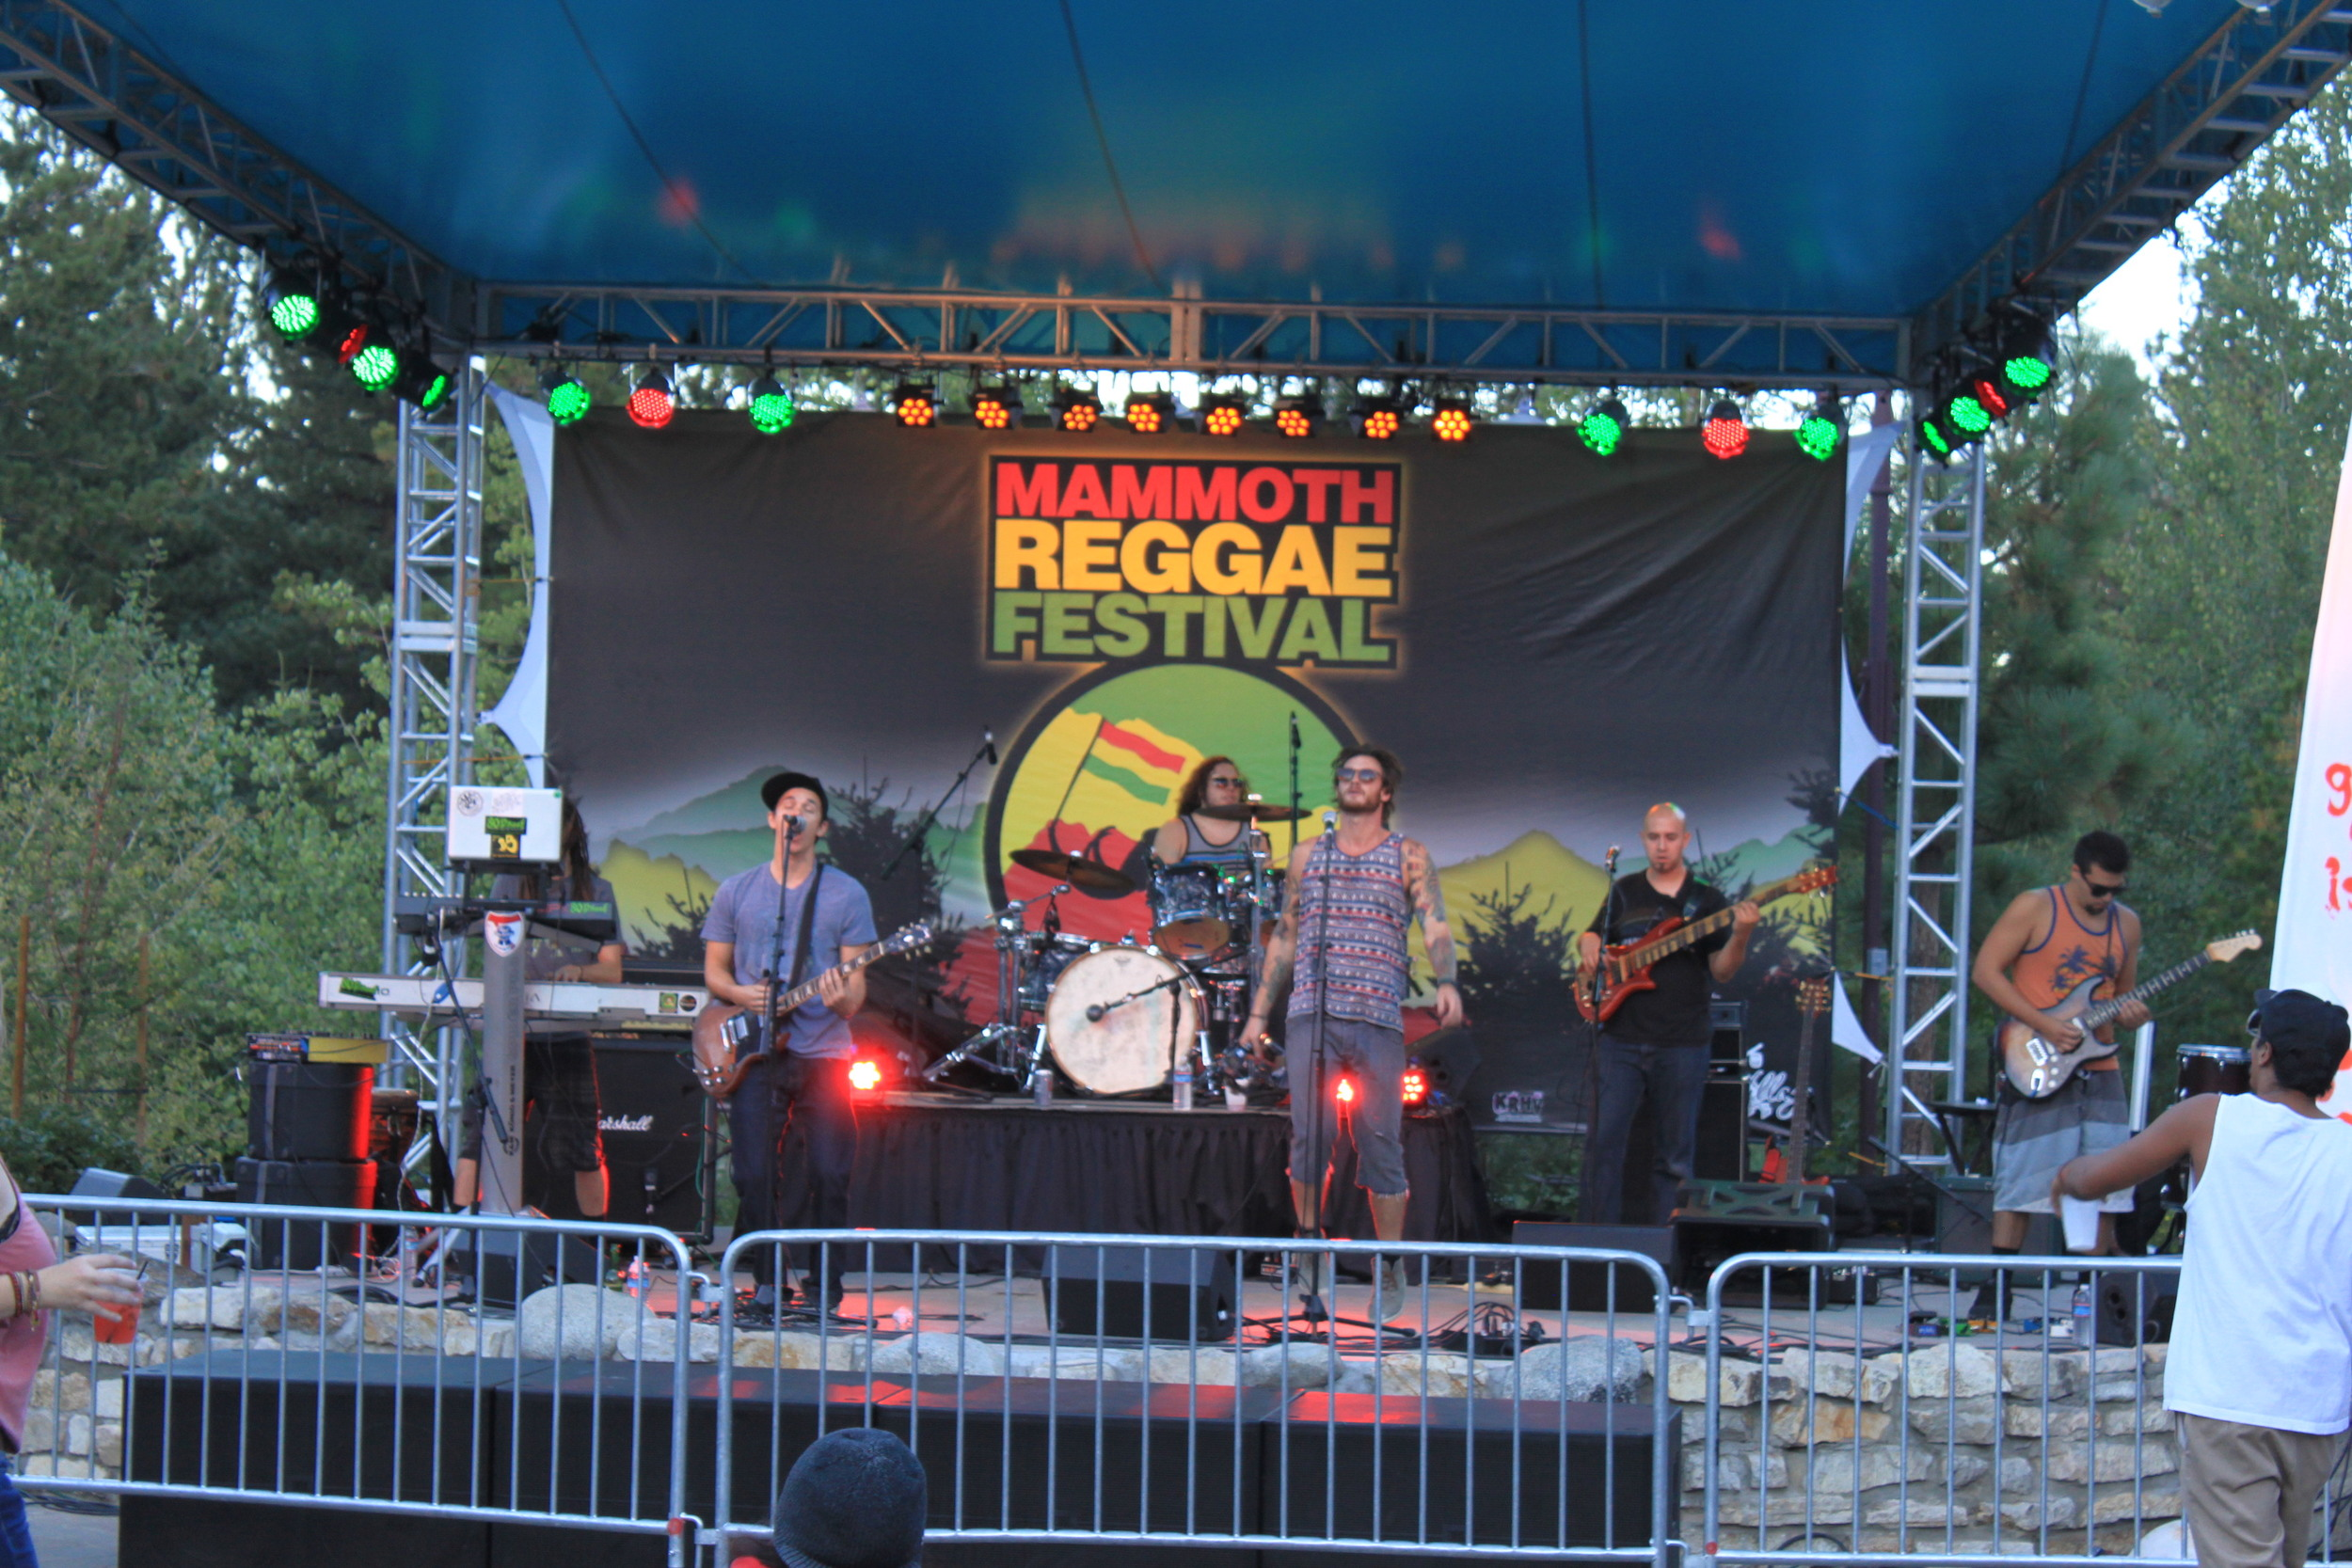 Mammoth Reggae Festival - 9th Annual @ The Village at Mammoth | Mammoth Lakes | California | United States